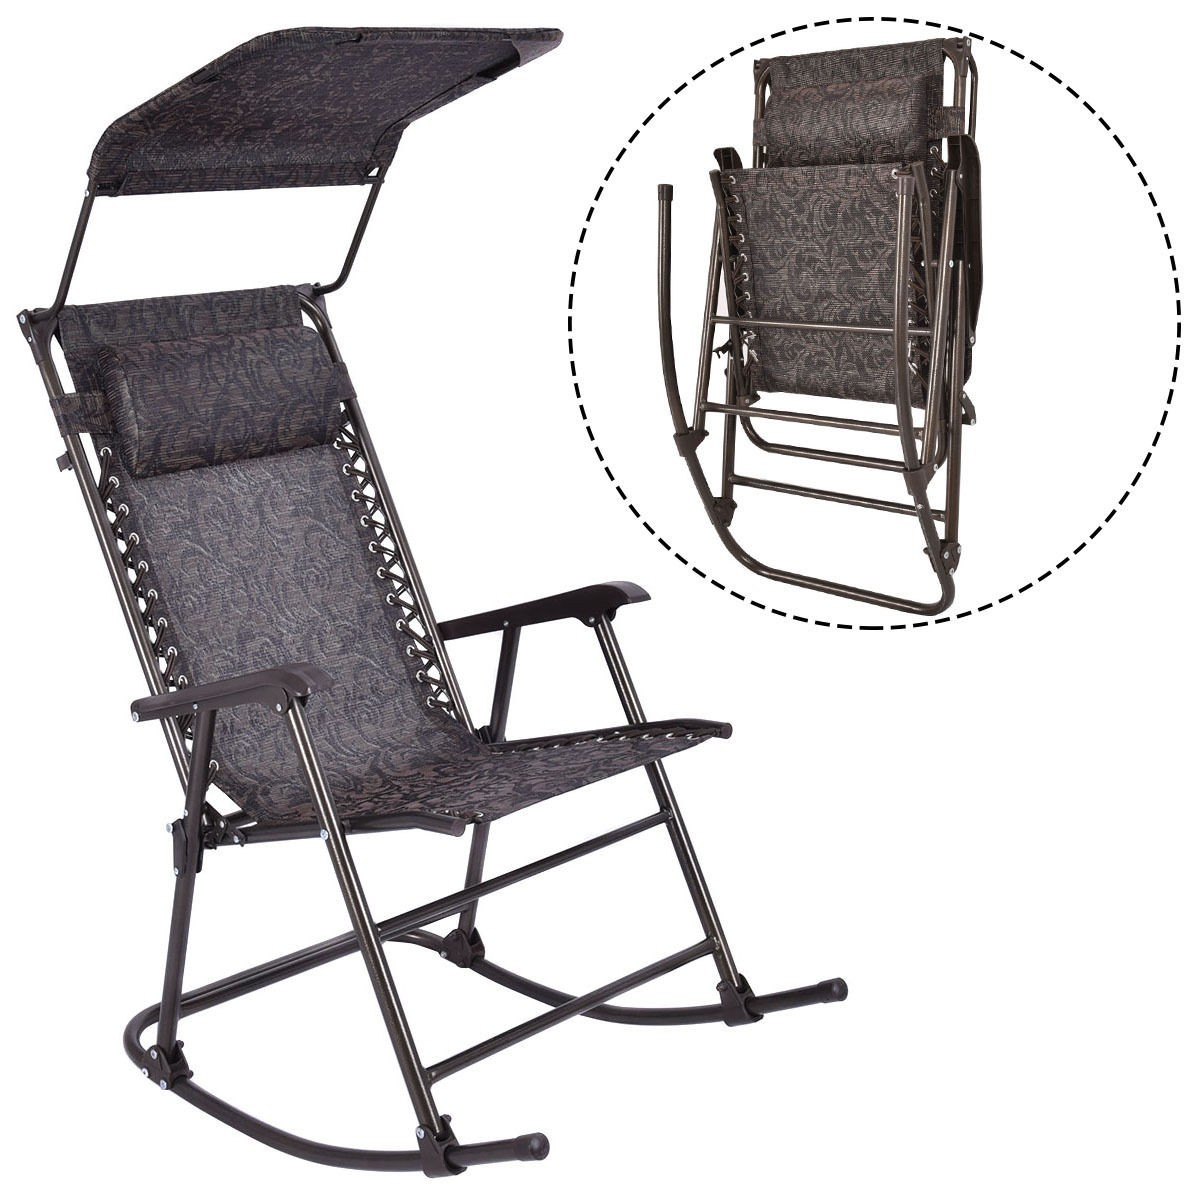 outdoor home daddy folding rocking chair rocker patio furniture canopy headrest ebay. Black Bedroom Furniture Sets. Home Design Ideas